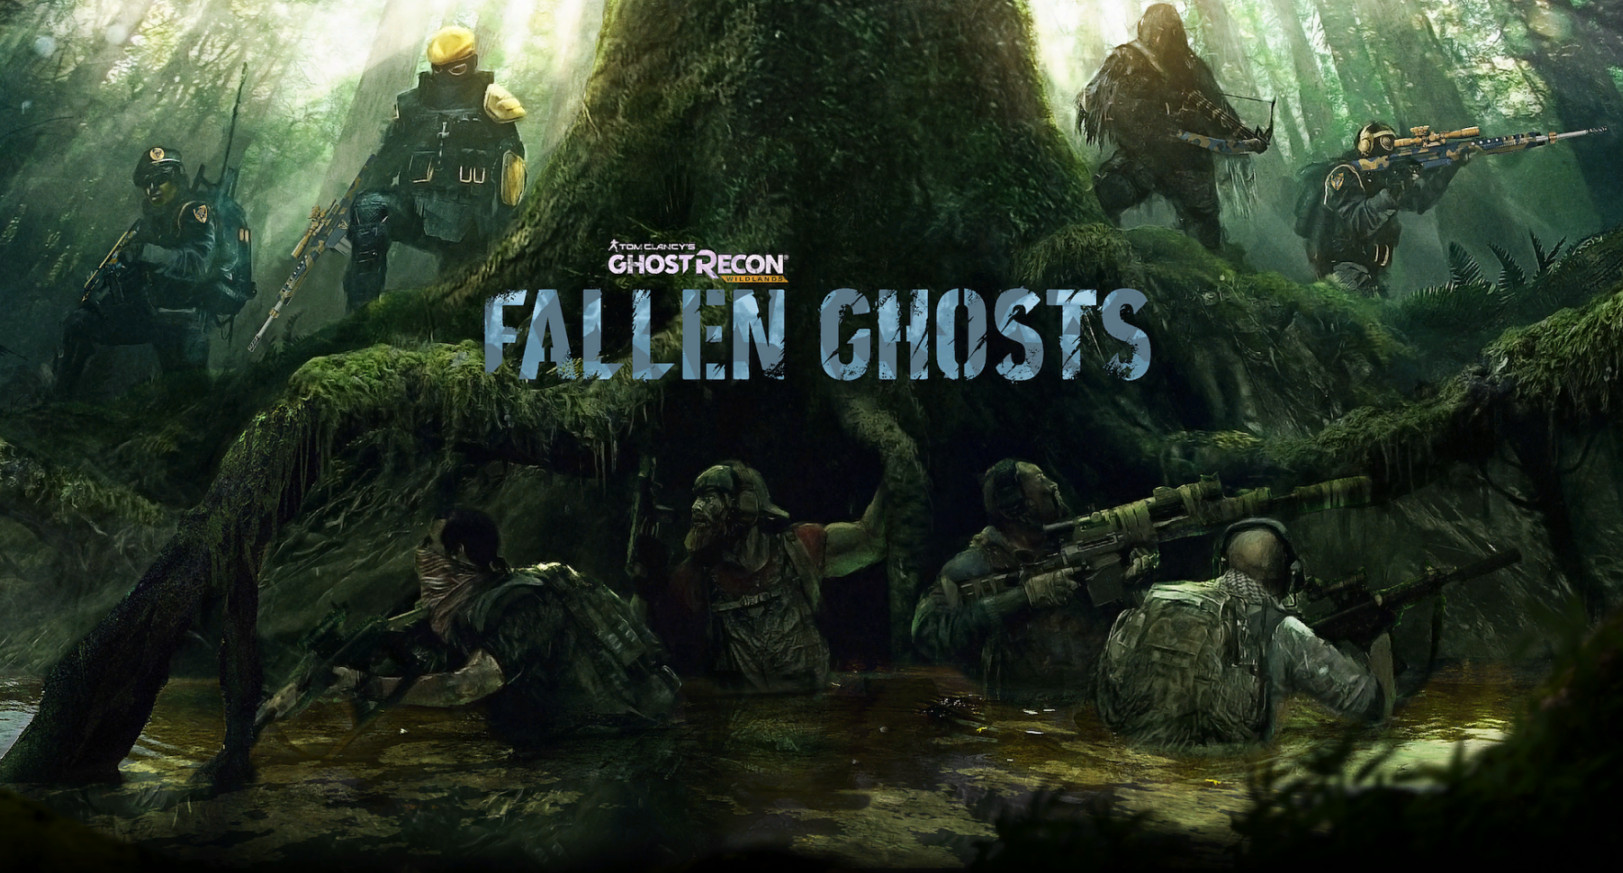 background - V Ghost Recon: Wildlands - Fallen Ghosts sa z lovcov stane korisť